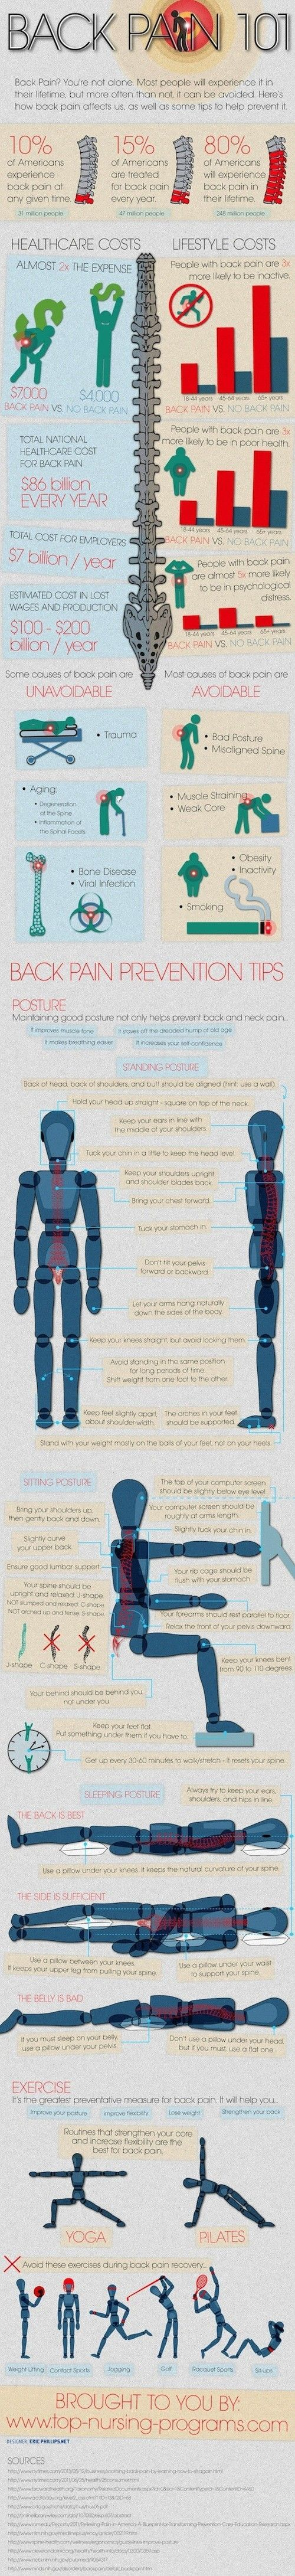 Everything You Need To Know About Back Pain (Infographic). How is a misaligned spine avoidable?